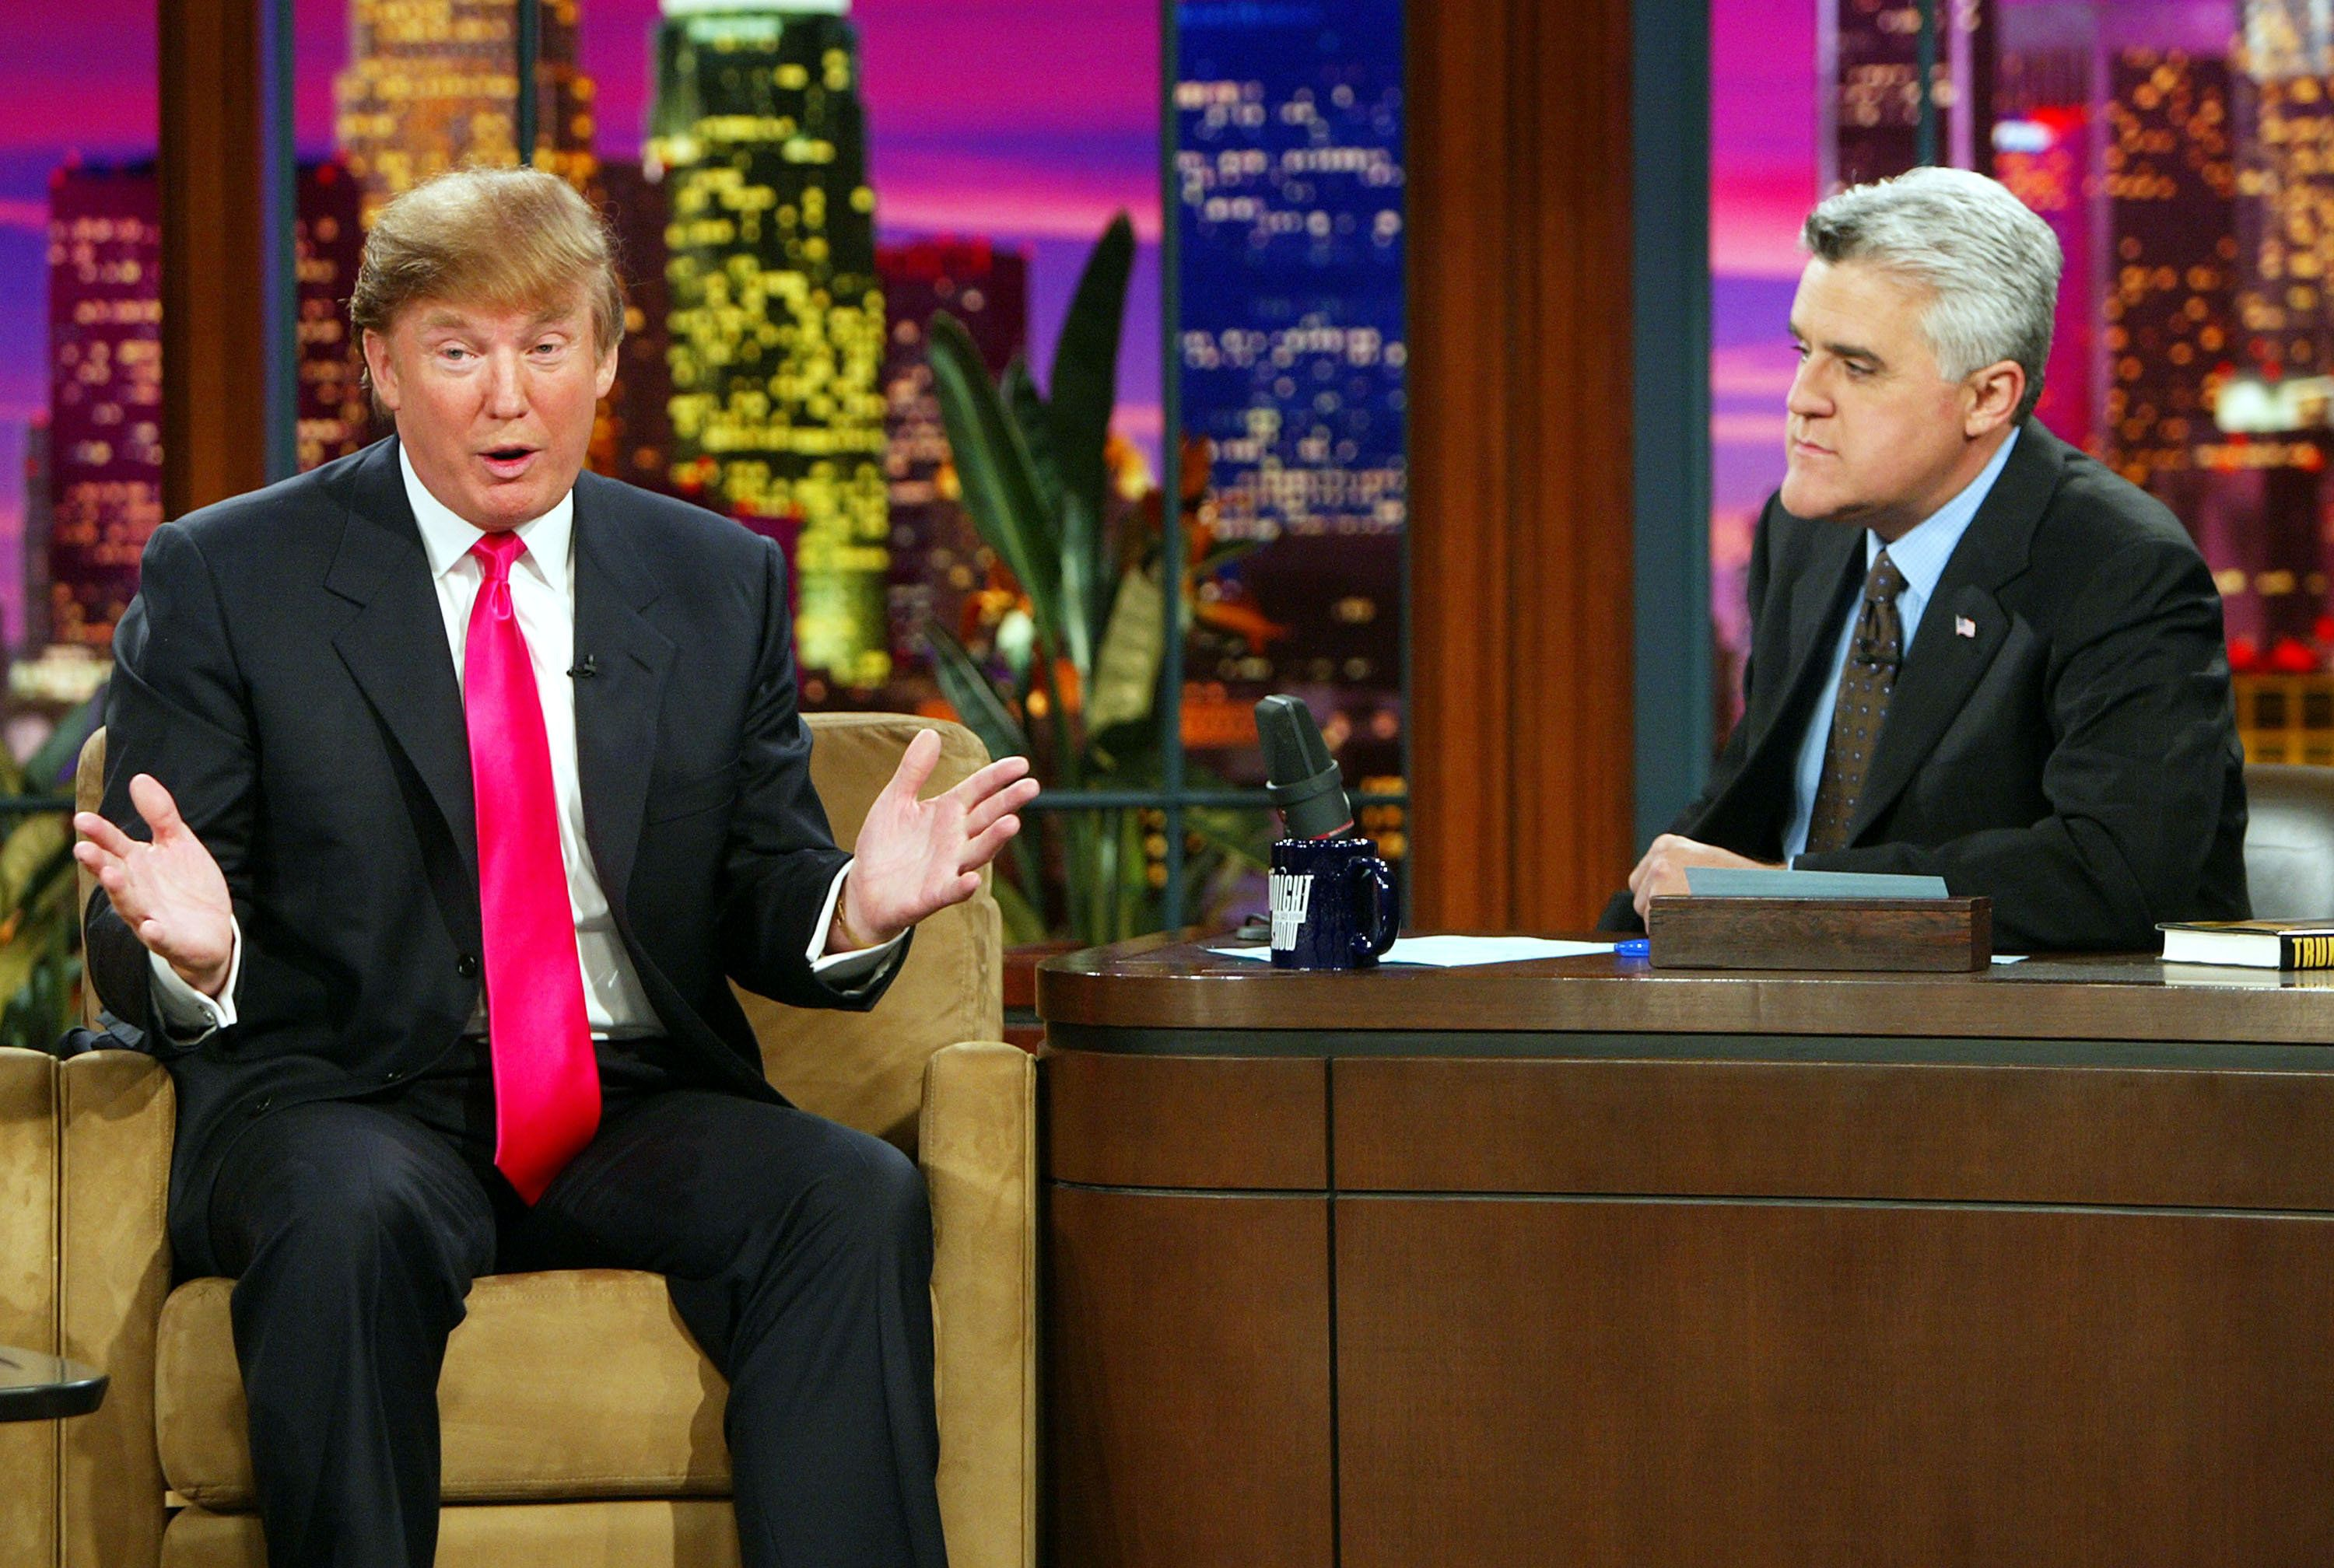 Donald Trump (L) appears on 'The Tonight Show with Jay Leno' at the NBC Studios on April 7, 2004 in Burbank, California.